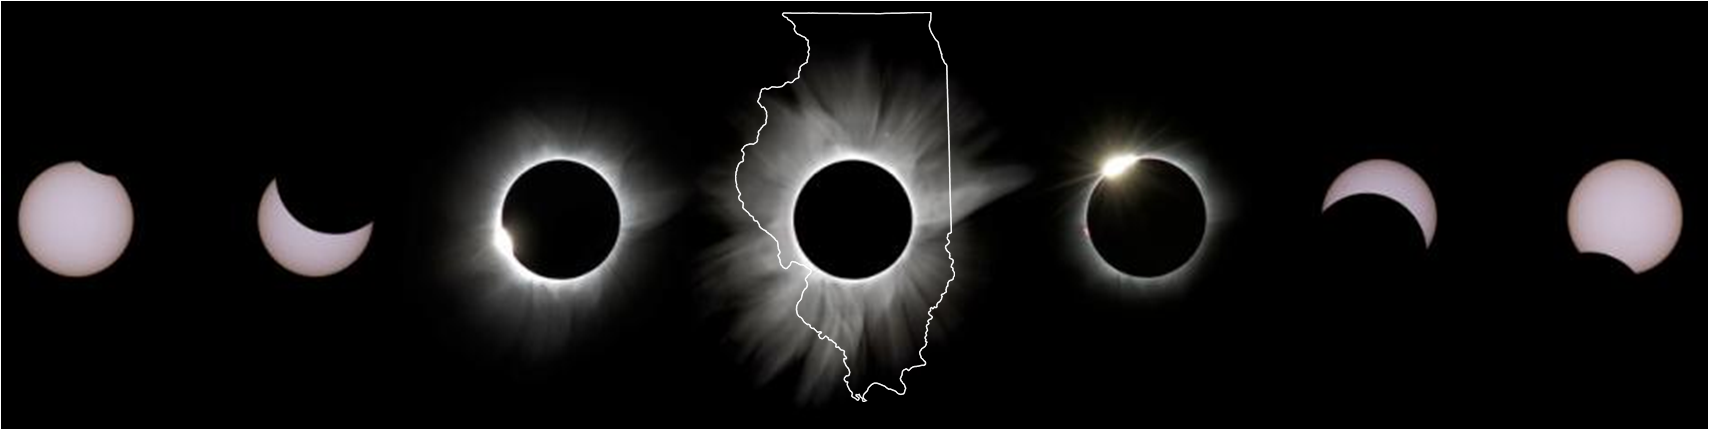 InSites To Go Eclipse Collage (credit J. Ng) overlain with outline map of IL